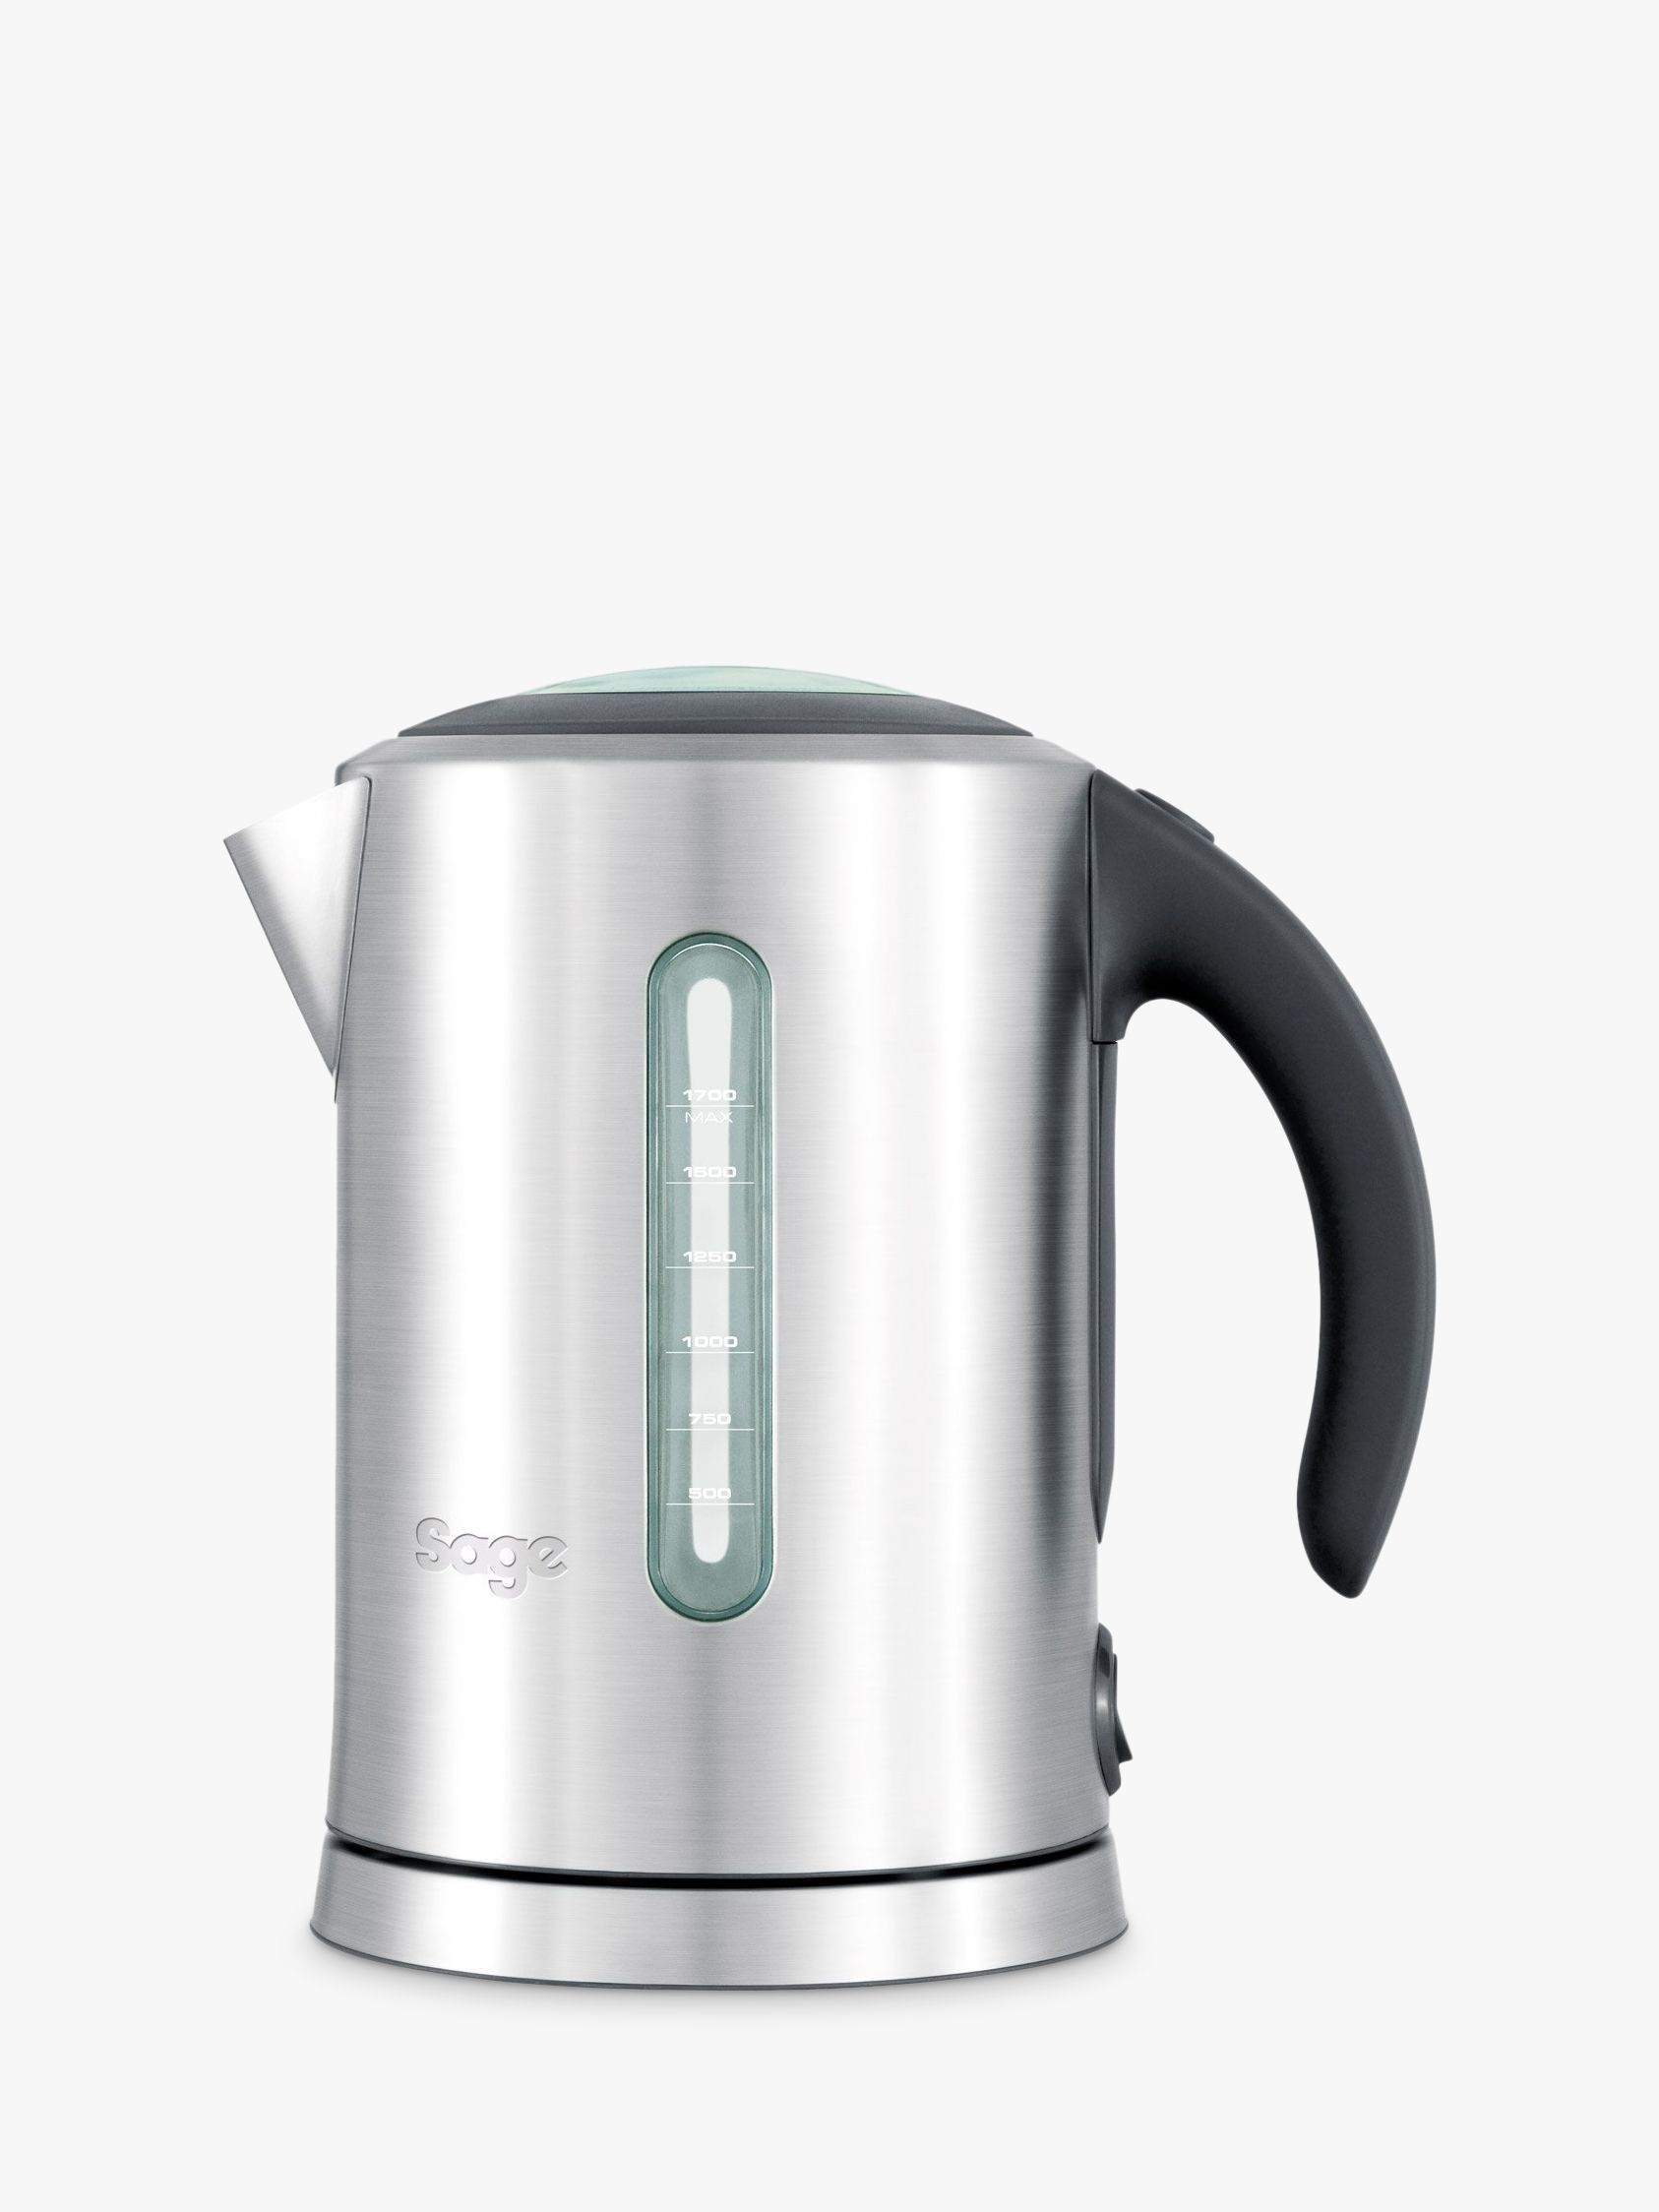 Sage Sage the Soft Open Kettle, Silver